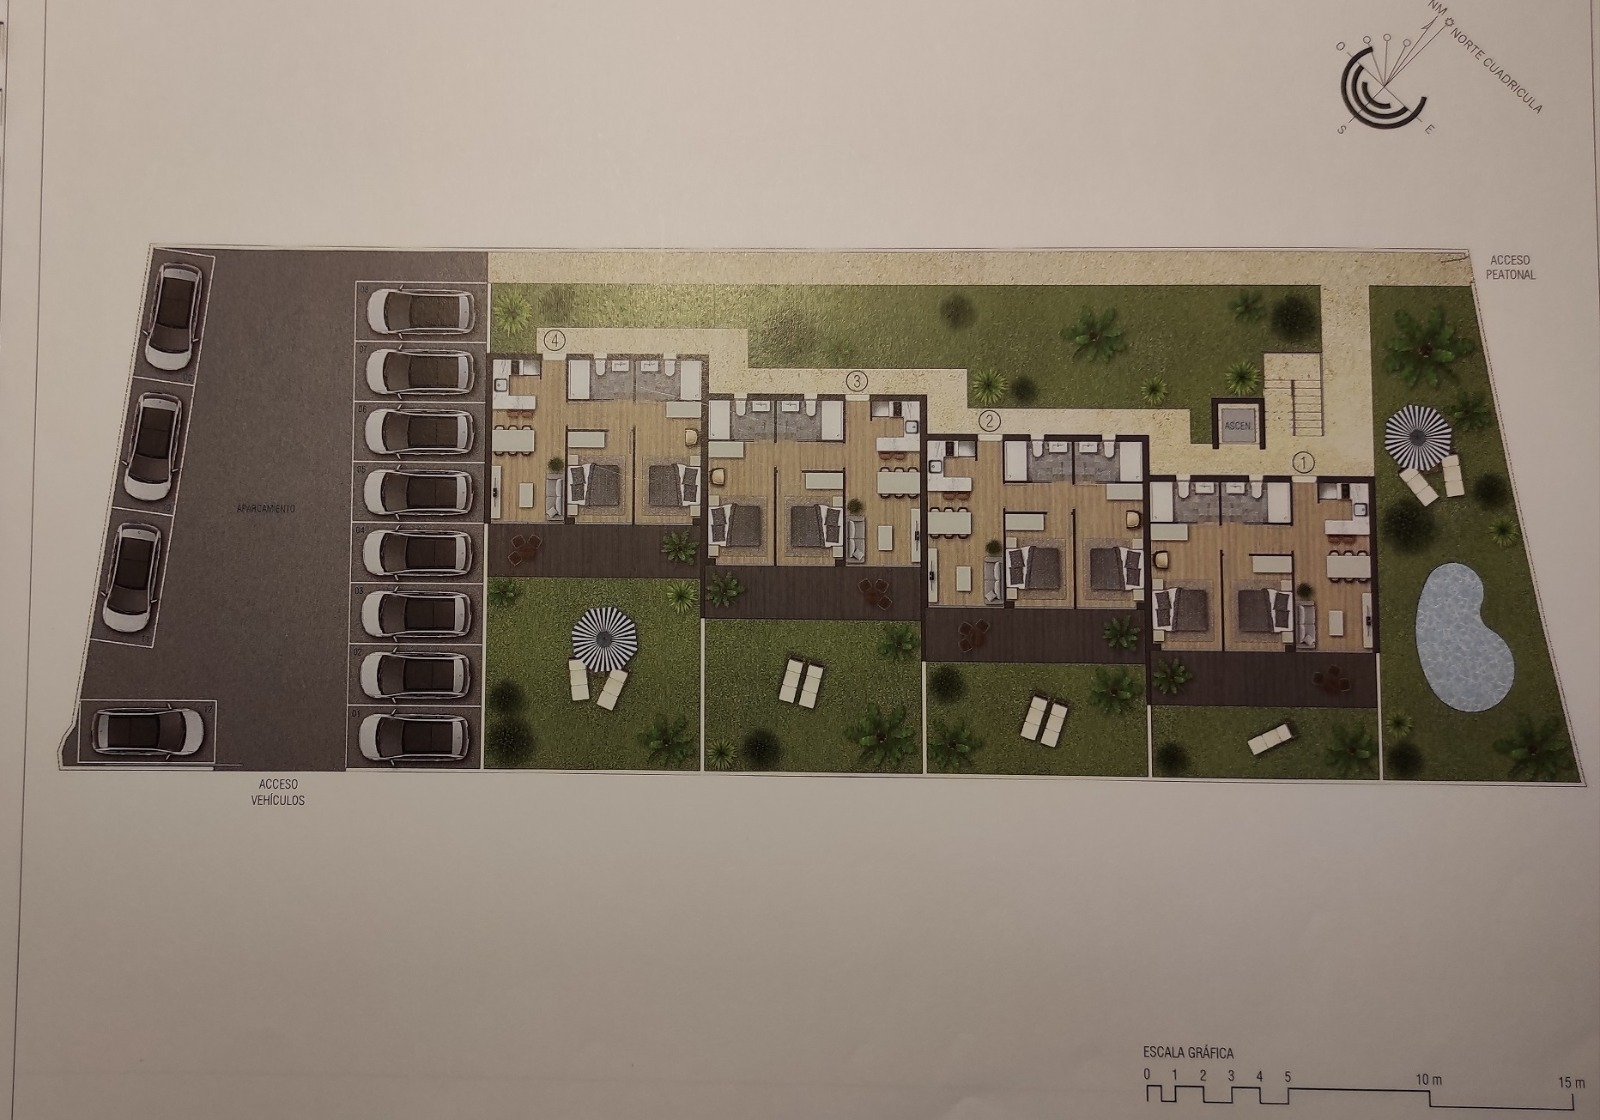 Land with project of 12 apartments of 60 m2 each with a total of 703 m2 frontline